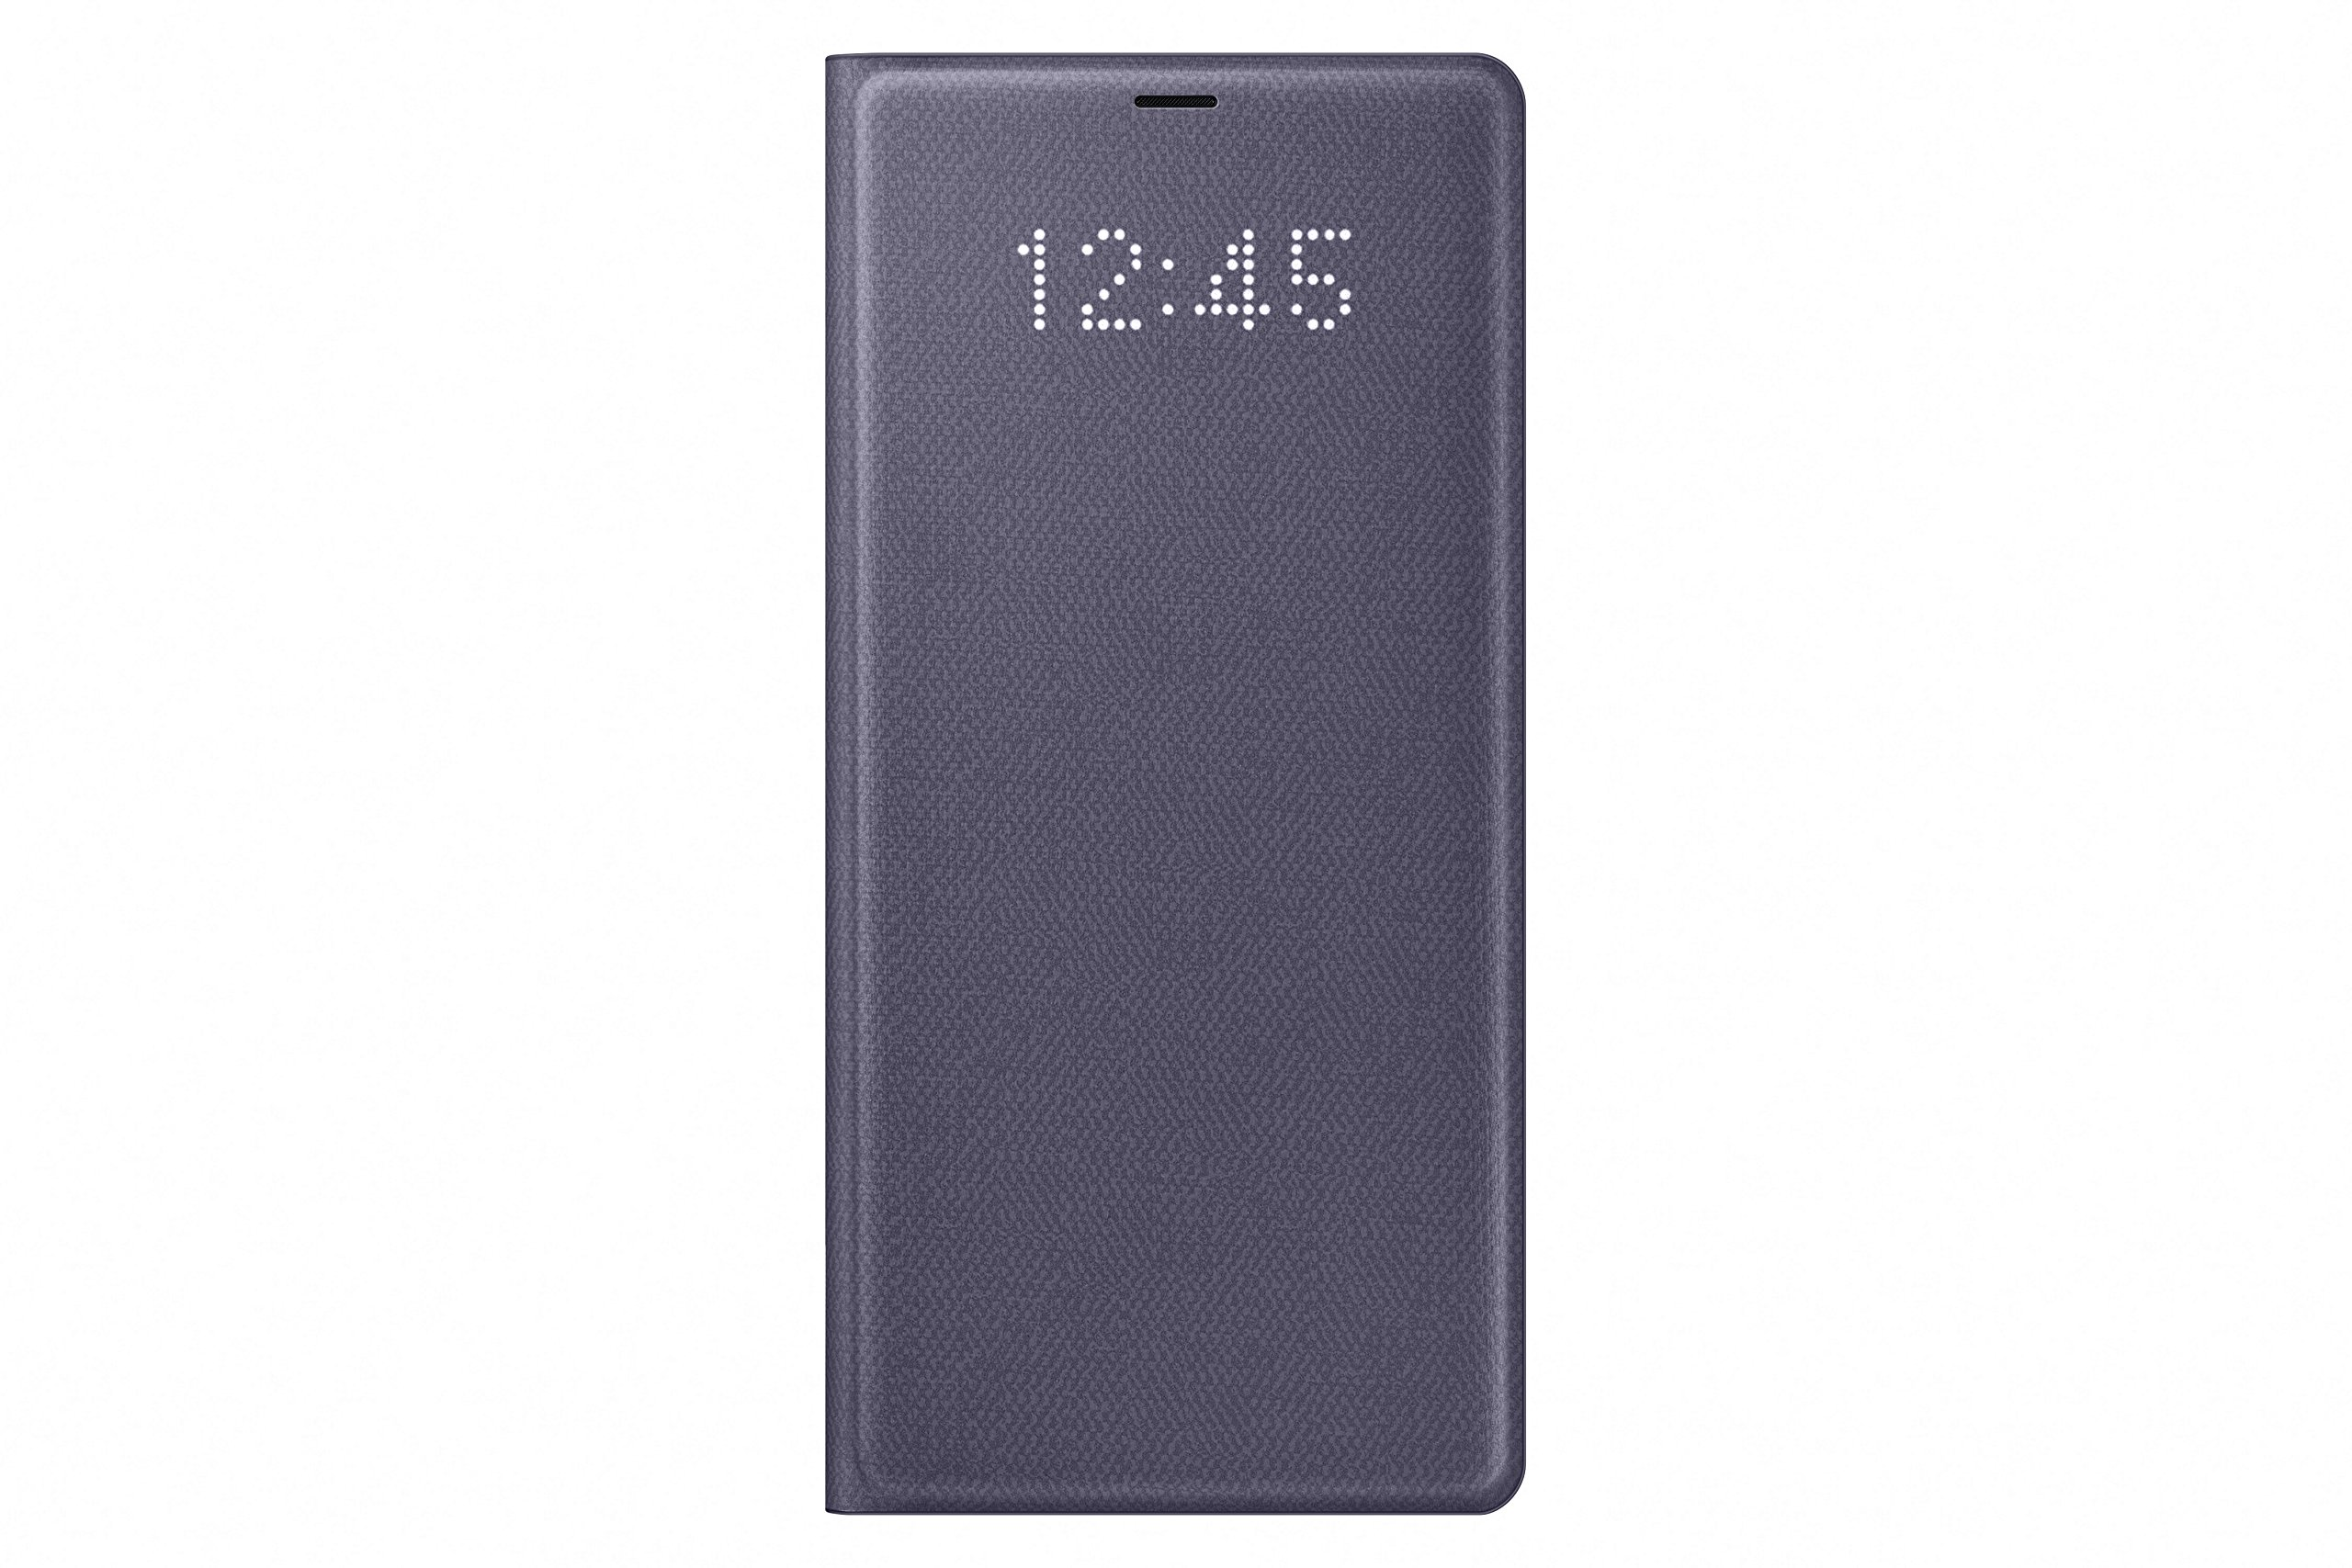 Samsung Galaxy Note 8 / Note8 LED View Wallet Case, Orchid Gray